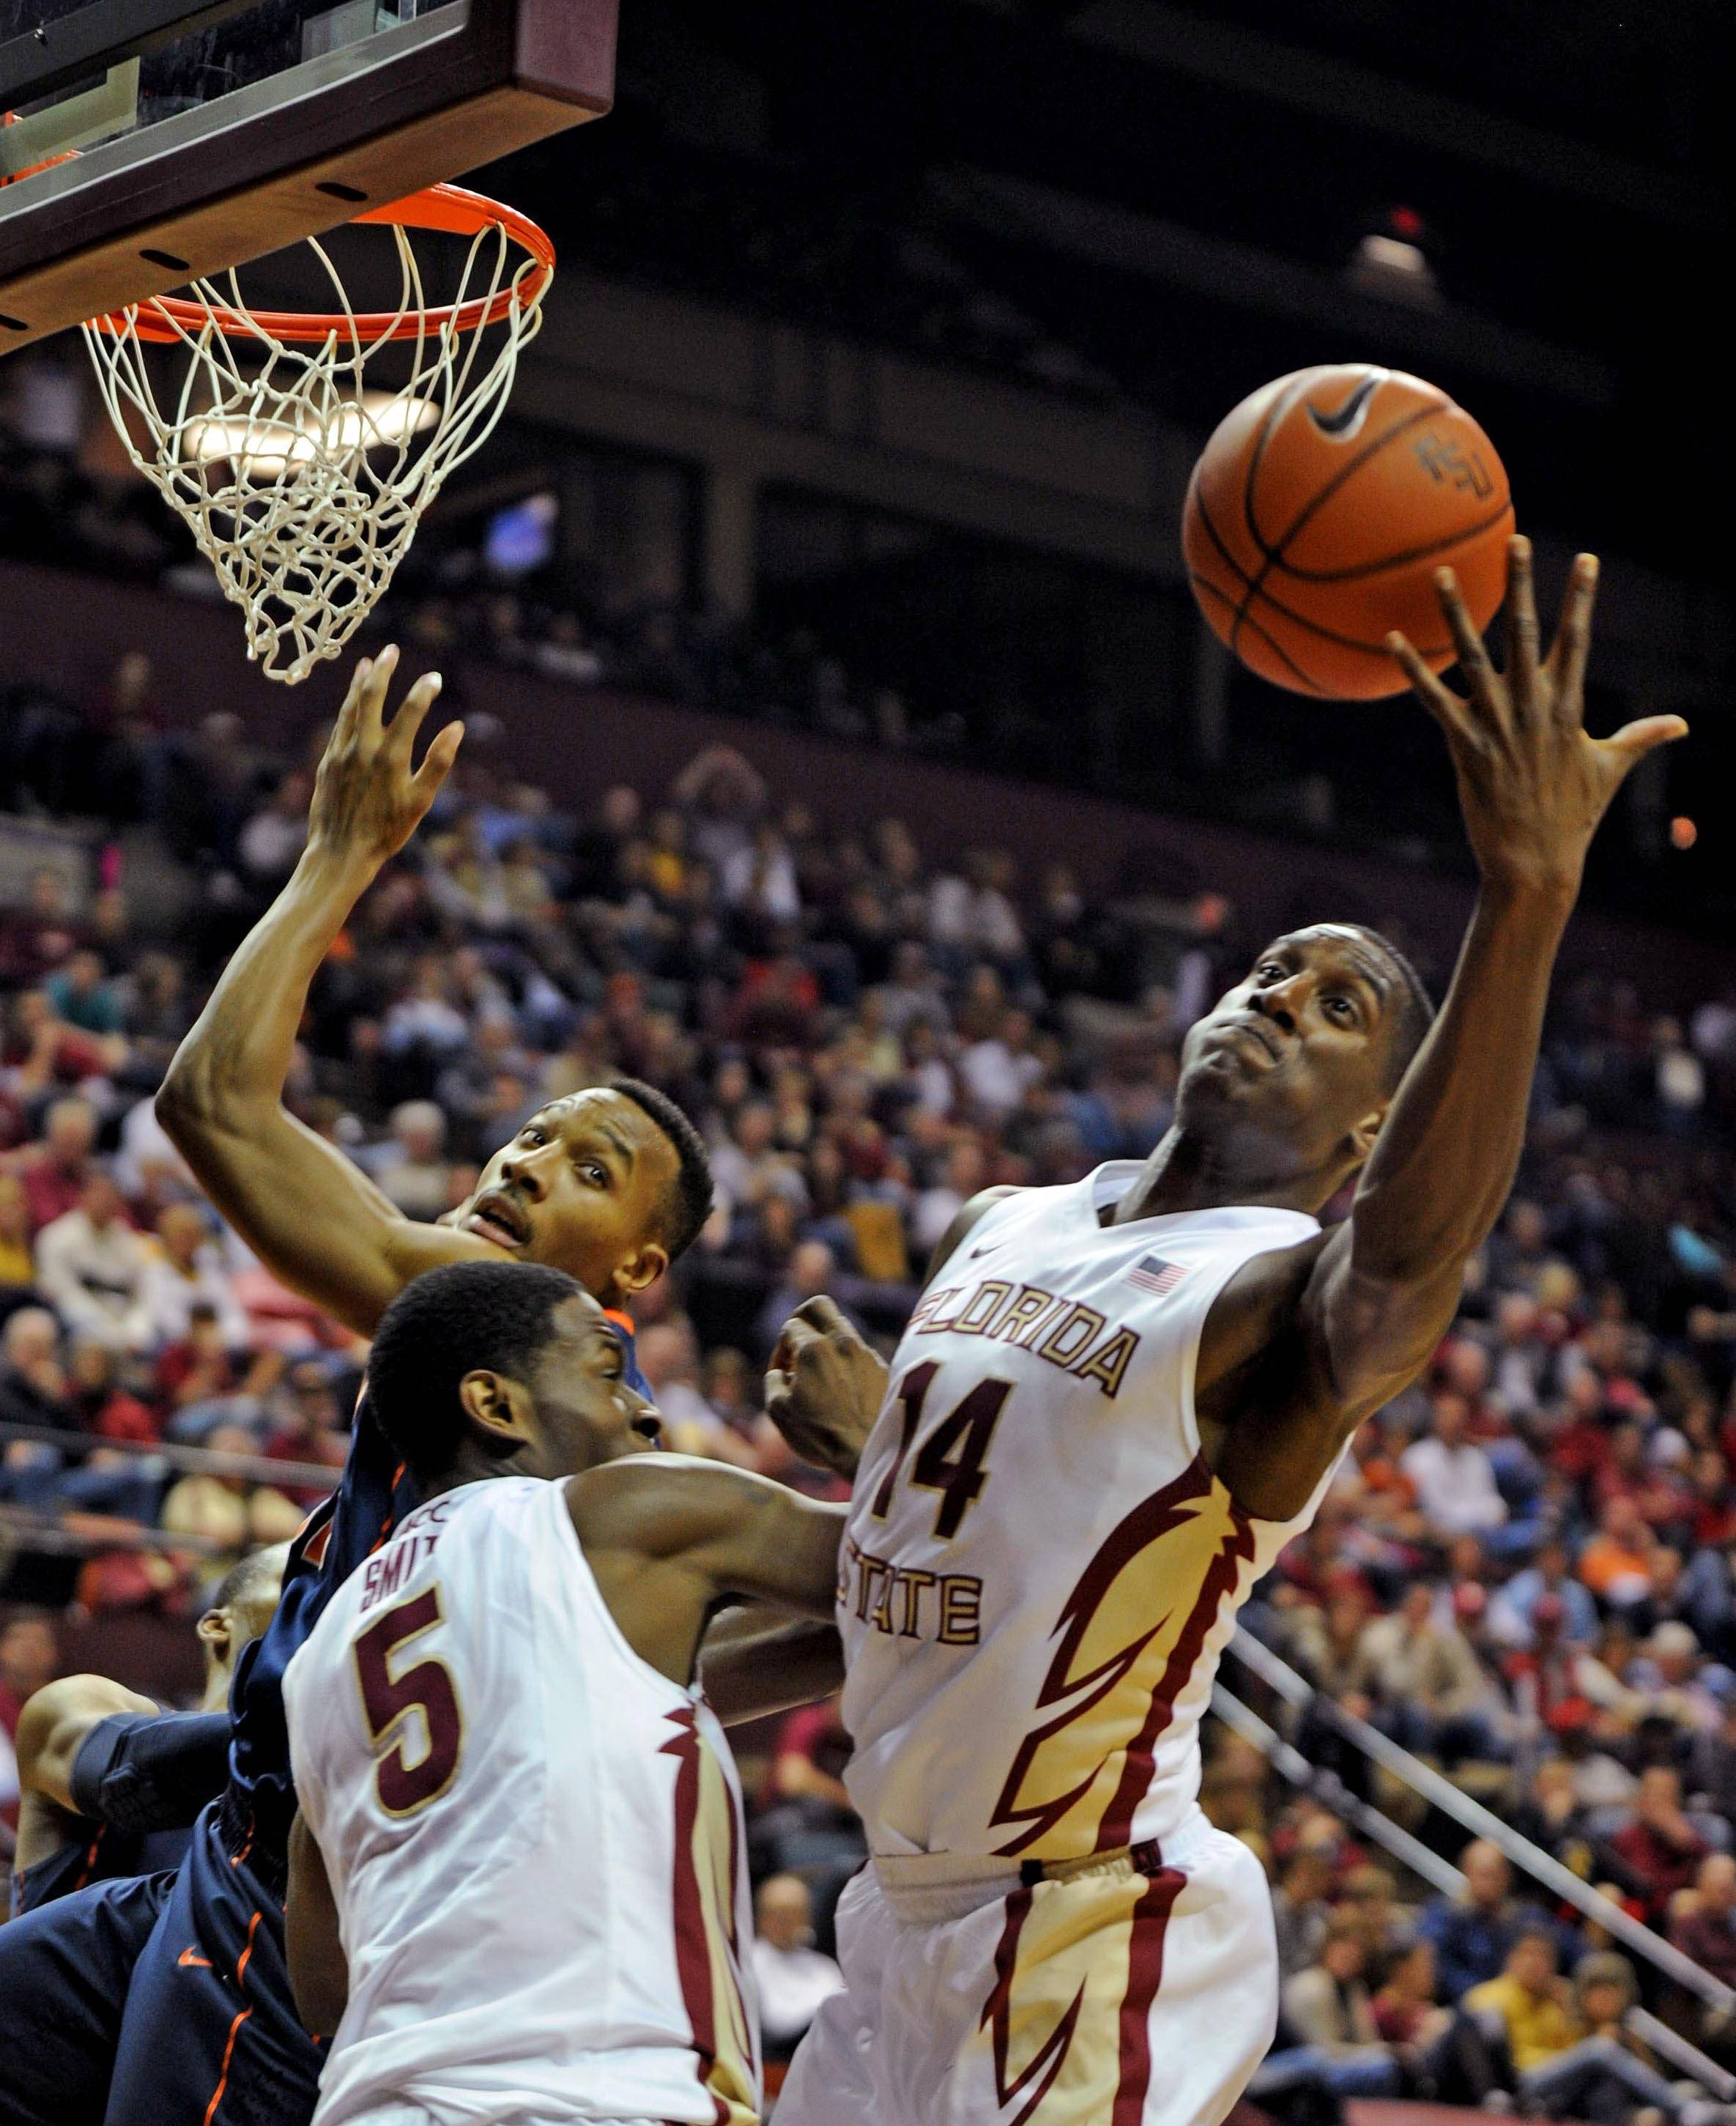 Jan 4, 2014; Tallahassee, FL, USA; Seminoles forward Robert Gilchrist (14) reaches for a rebound during the first half. Melina Vastola-USA TODAY Sports